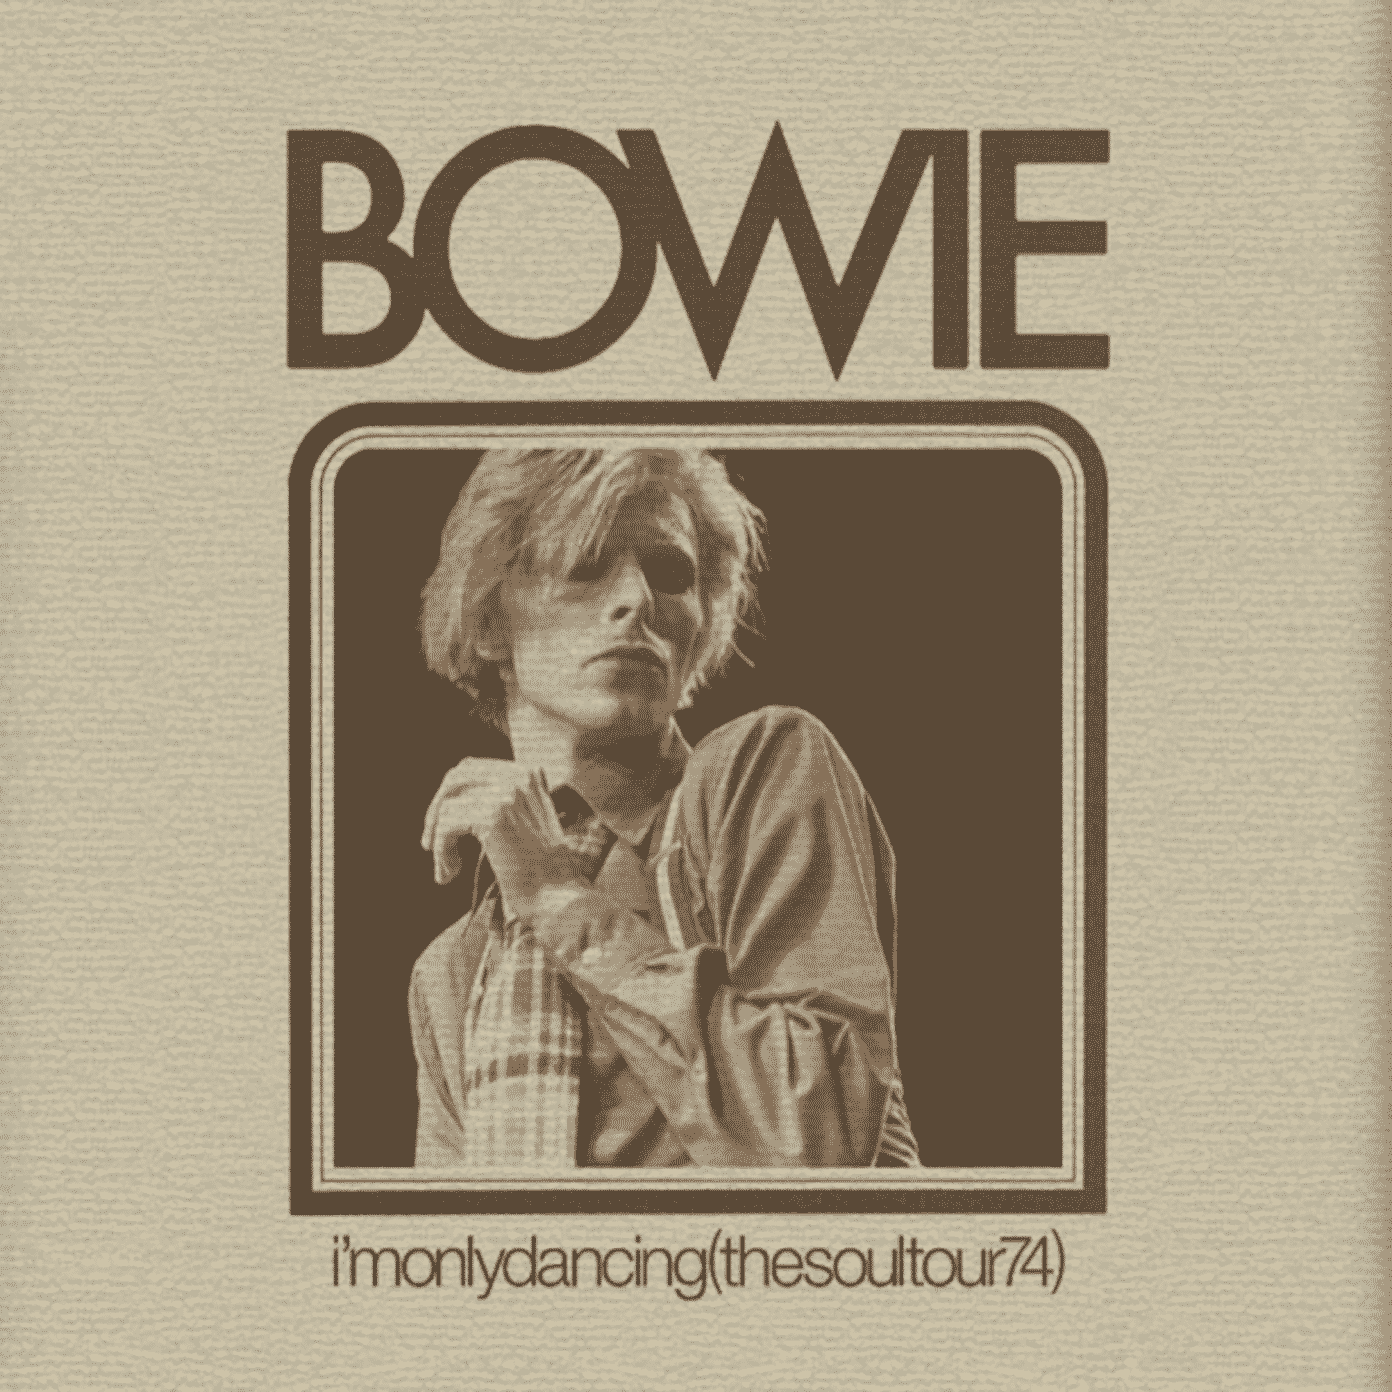 Bowie : I'm Only Dancing (The Soul Tour 74)